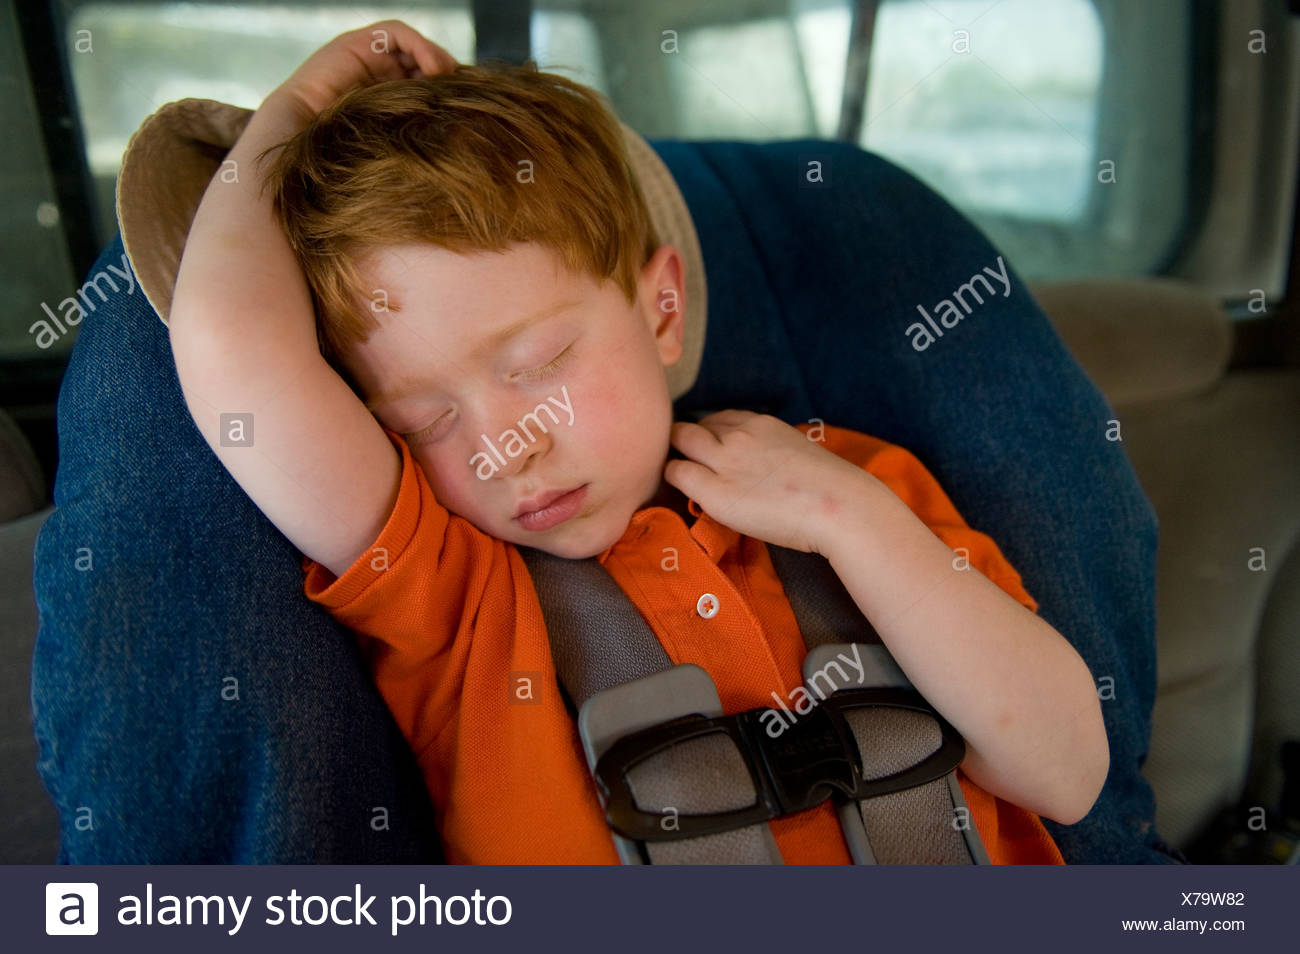 A young boy takes a nap in his car seat. - Stock Image